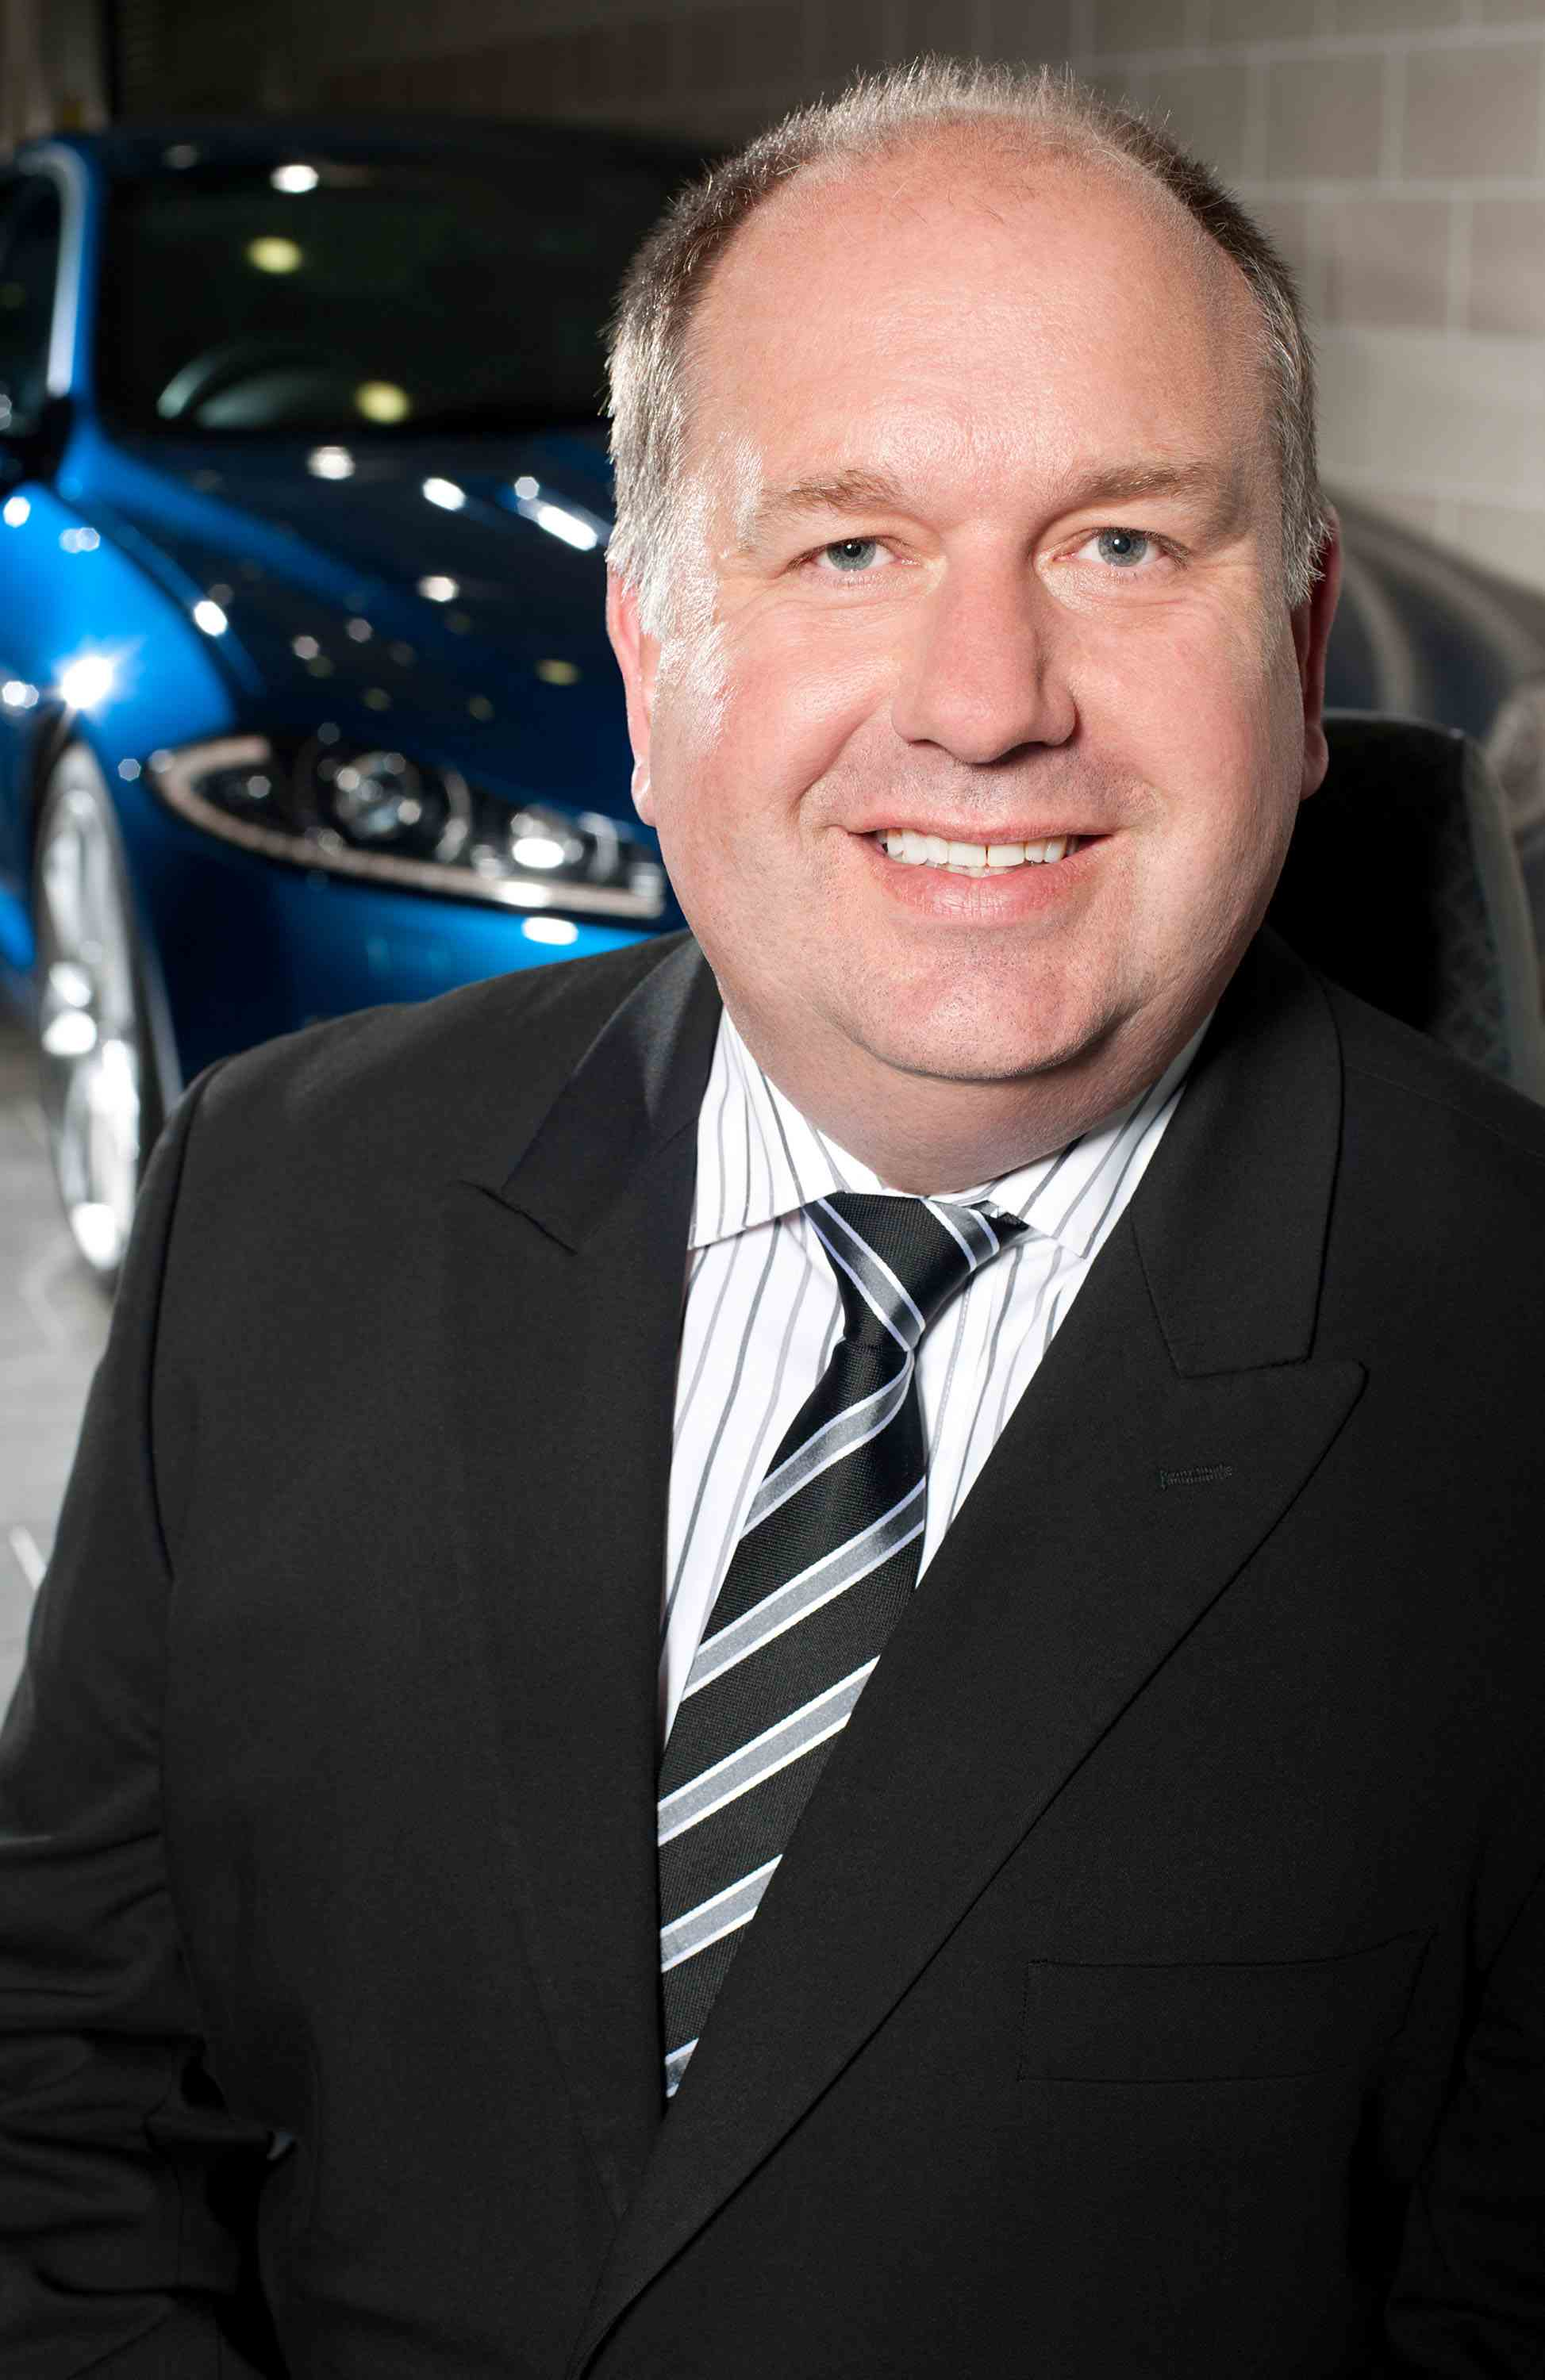 David Lewis, UK sales director at Jaguar